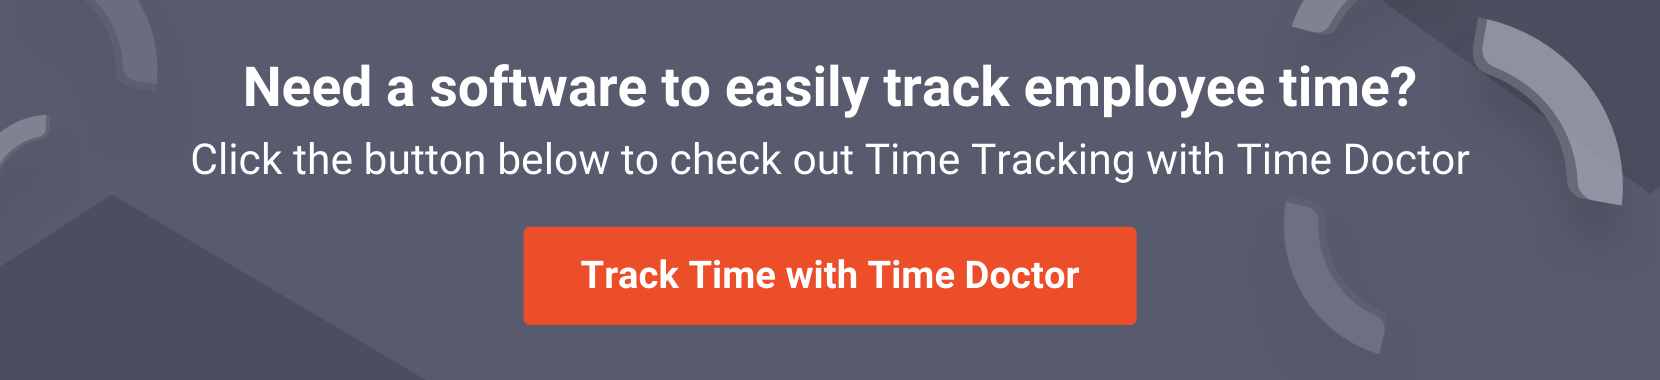 track time with time doctor